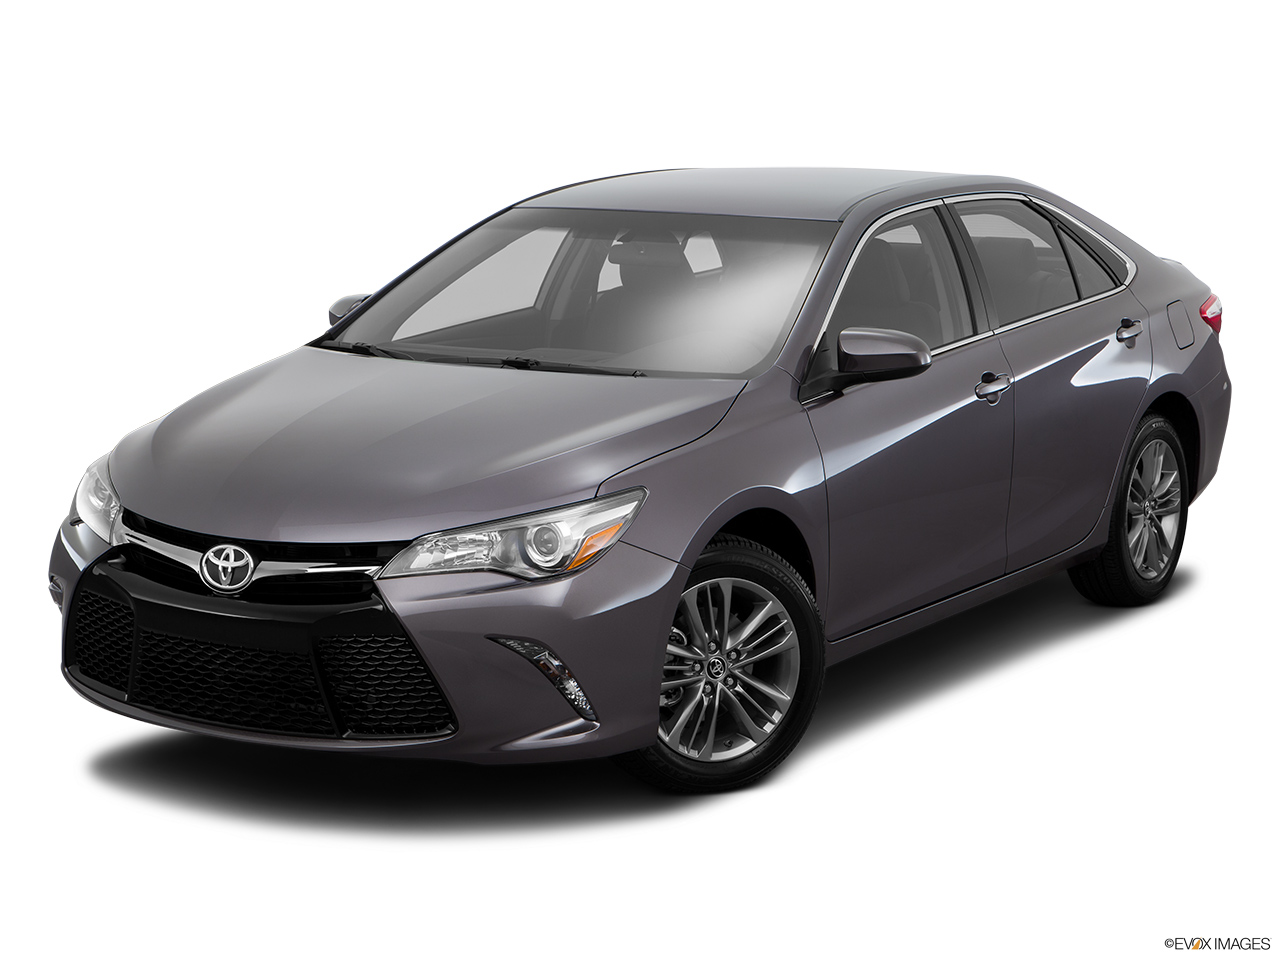 bonnet pricing australia lower toyota superior is a sport camry the detailed per holding road display chassis for ascent on stiffer cent new some up include equipment interior and price firsts heads inch